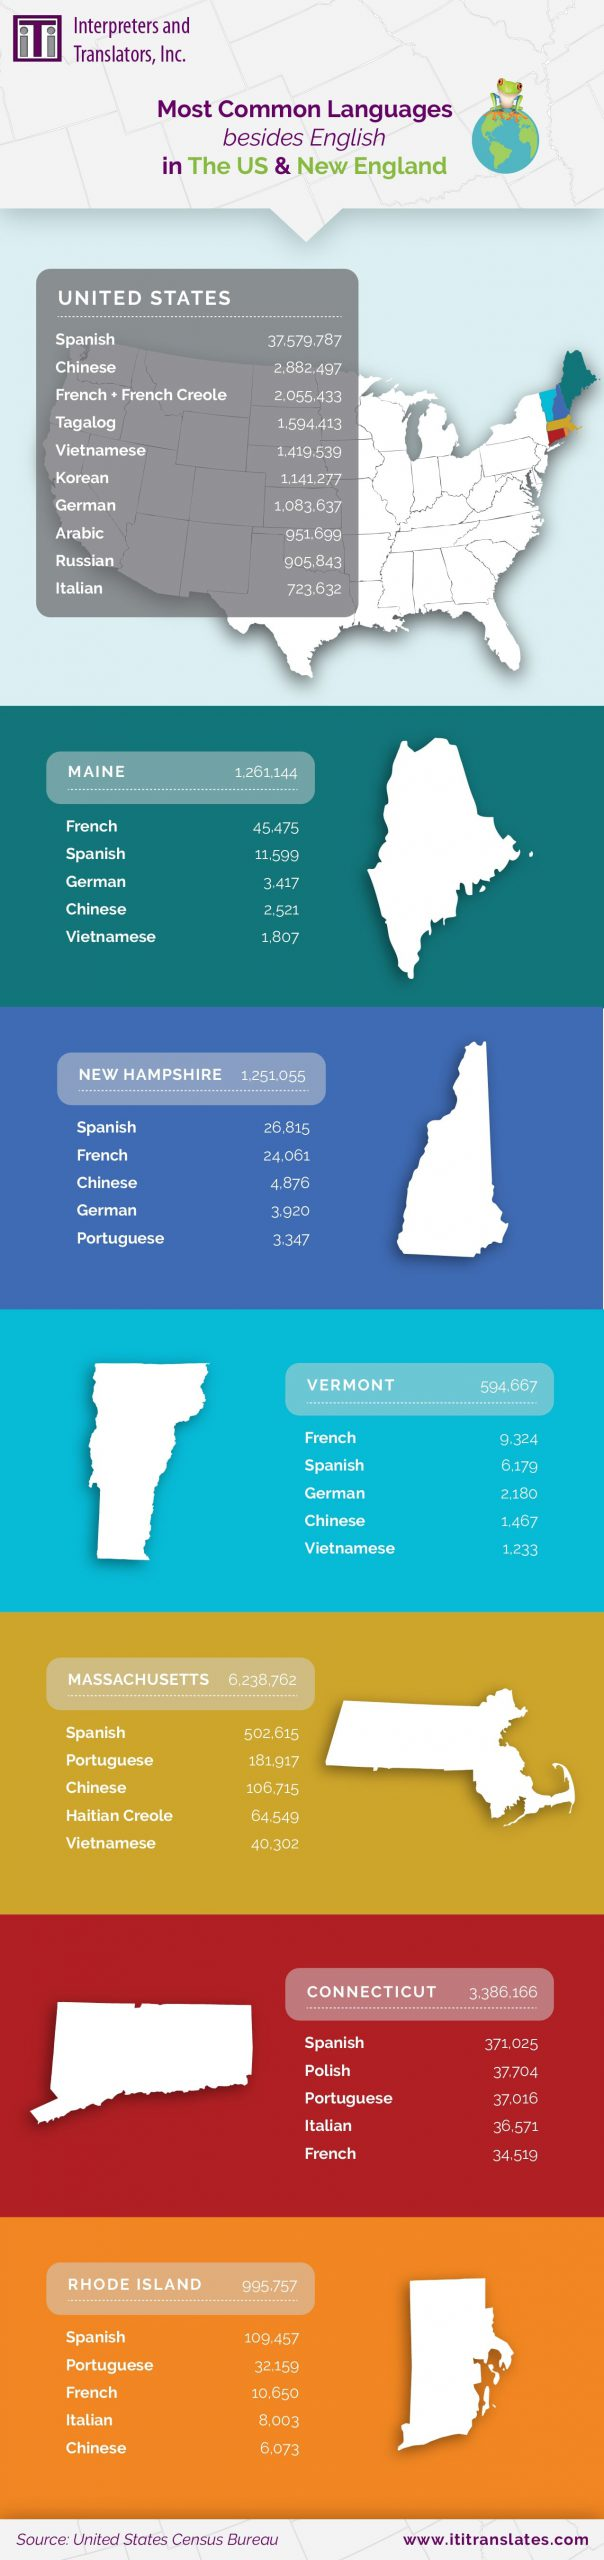 Infographic on the most common languages besides English in the US and New England